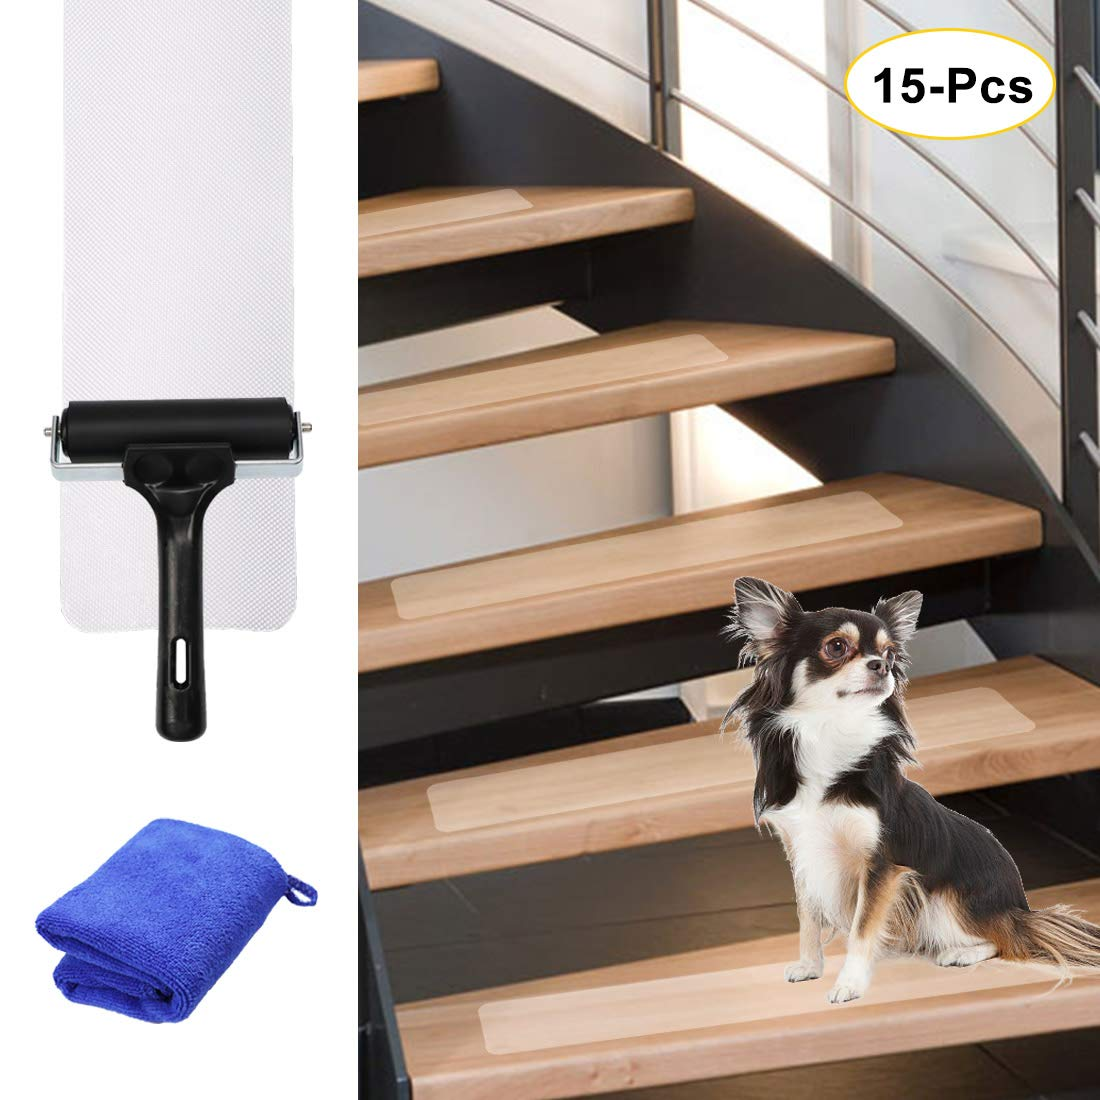 Non-Slip Stair Treads Tape Clear (15-Pack), AUTOPkio 24''x4'' Anti Slip Pre-Cut Non-Skid Adhesive Grip Safety Strips with Installation Roller for Baby/Elder/Pet Indoor Outdoor Stairs